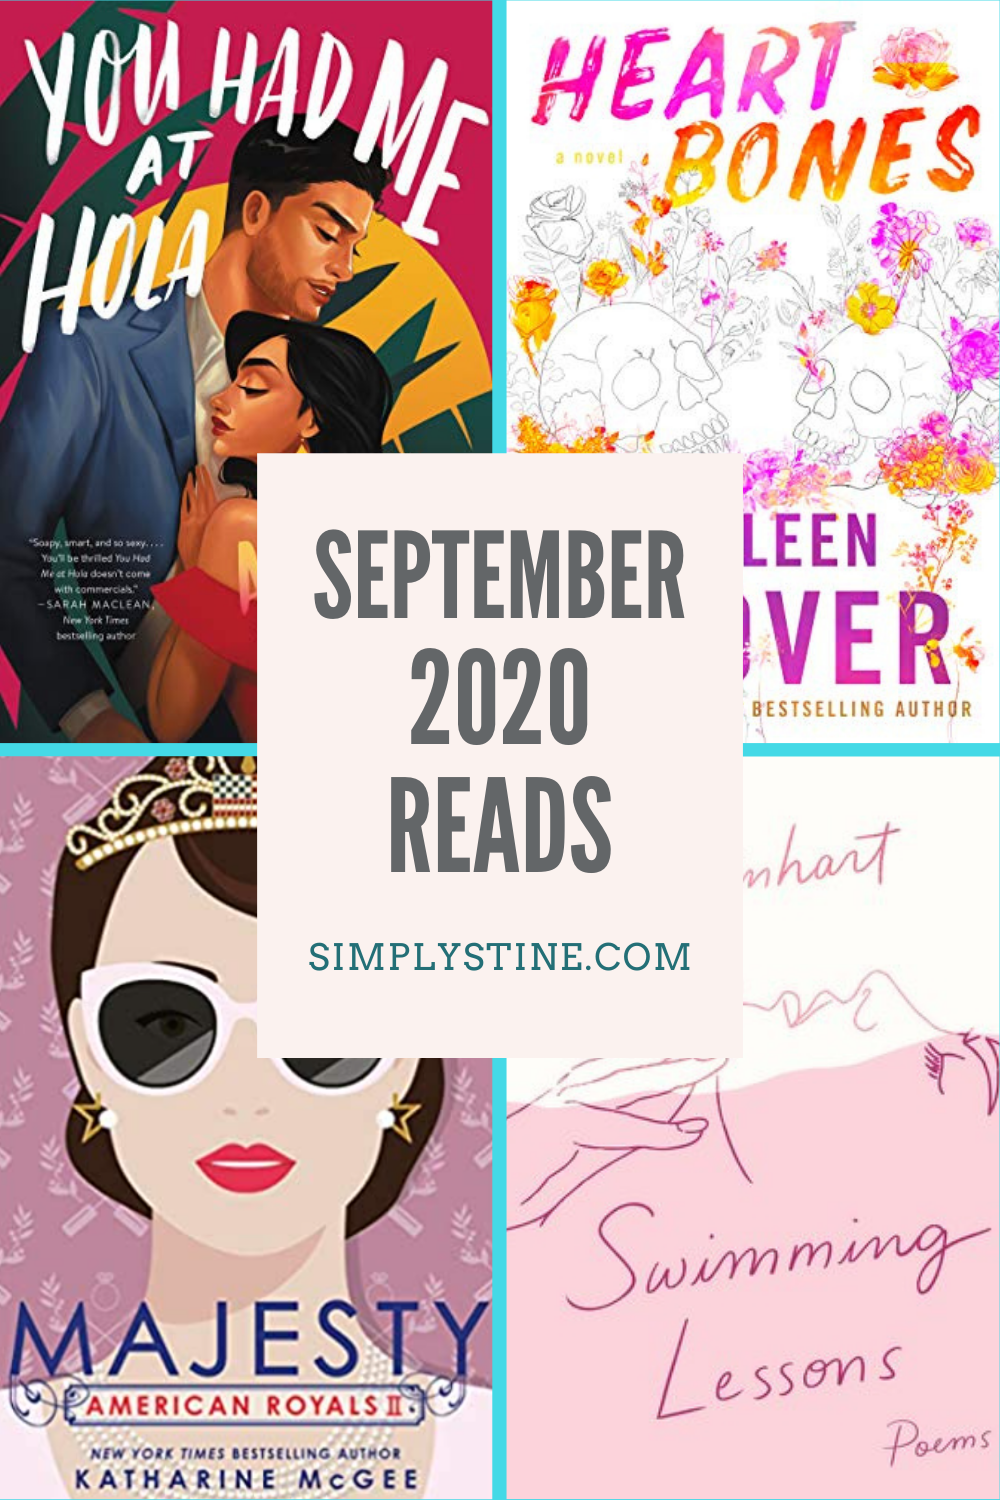 Sharing my September 2020 Reading List and the books that I chose for my October Book Club #Books #ReadingList #BookClub #LiliReinhart #AGoodMarriage #Thriller